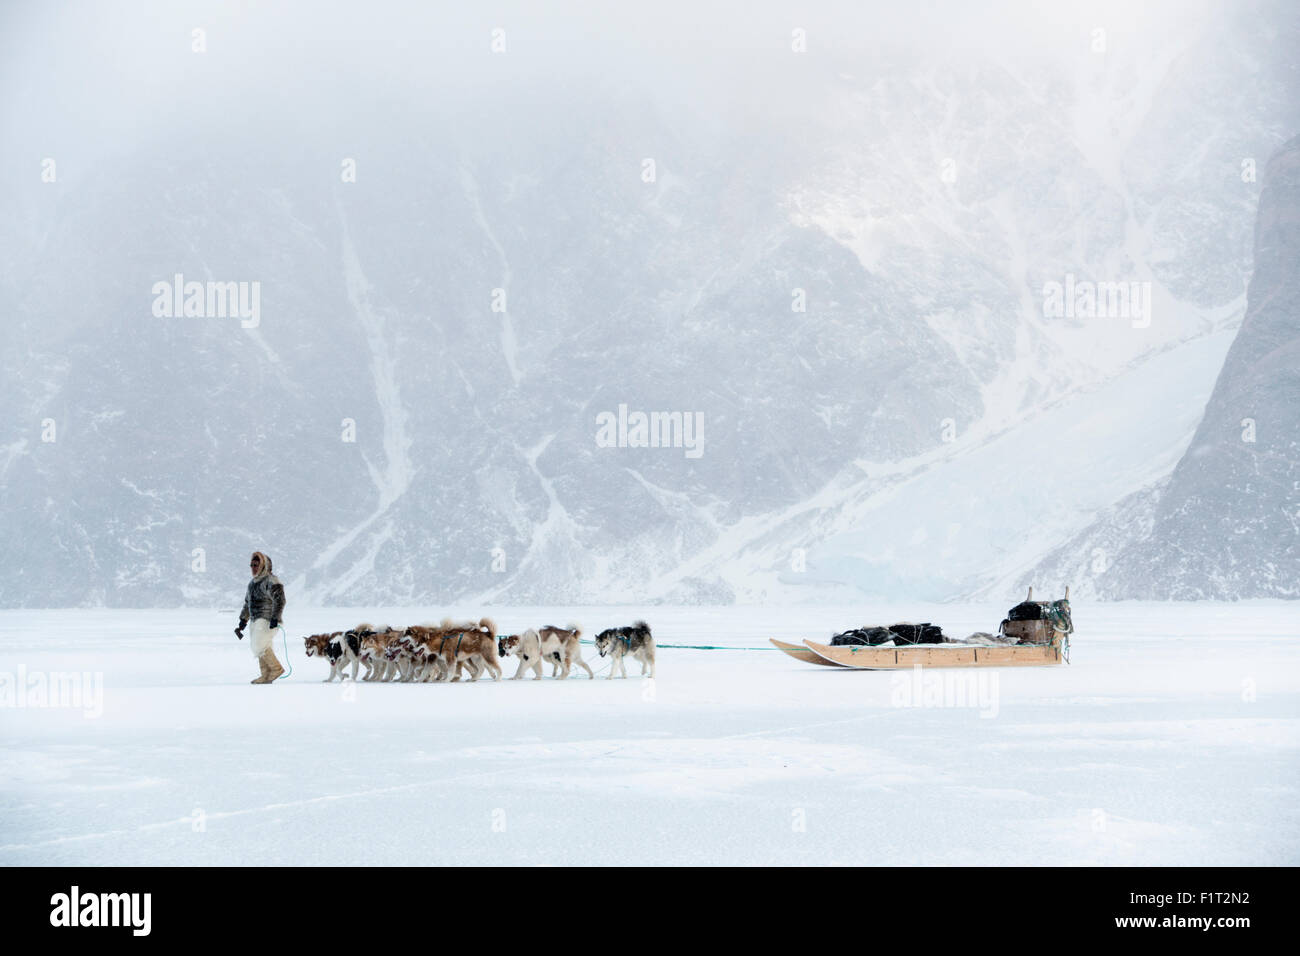 Inuit hunter walking his dog team on the sea ice in a snow storm, Greenland, Denmark, Polar Regions - Stock Image